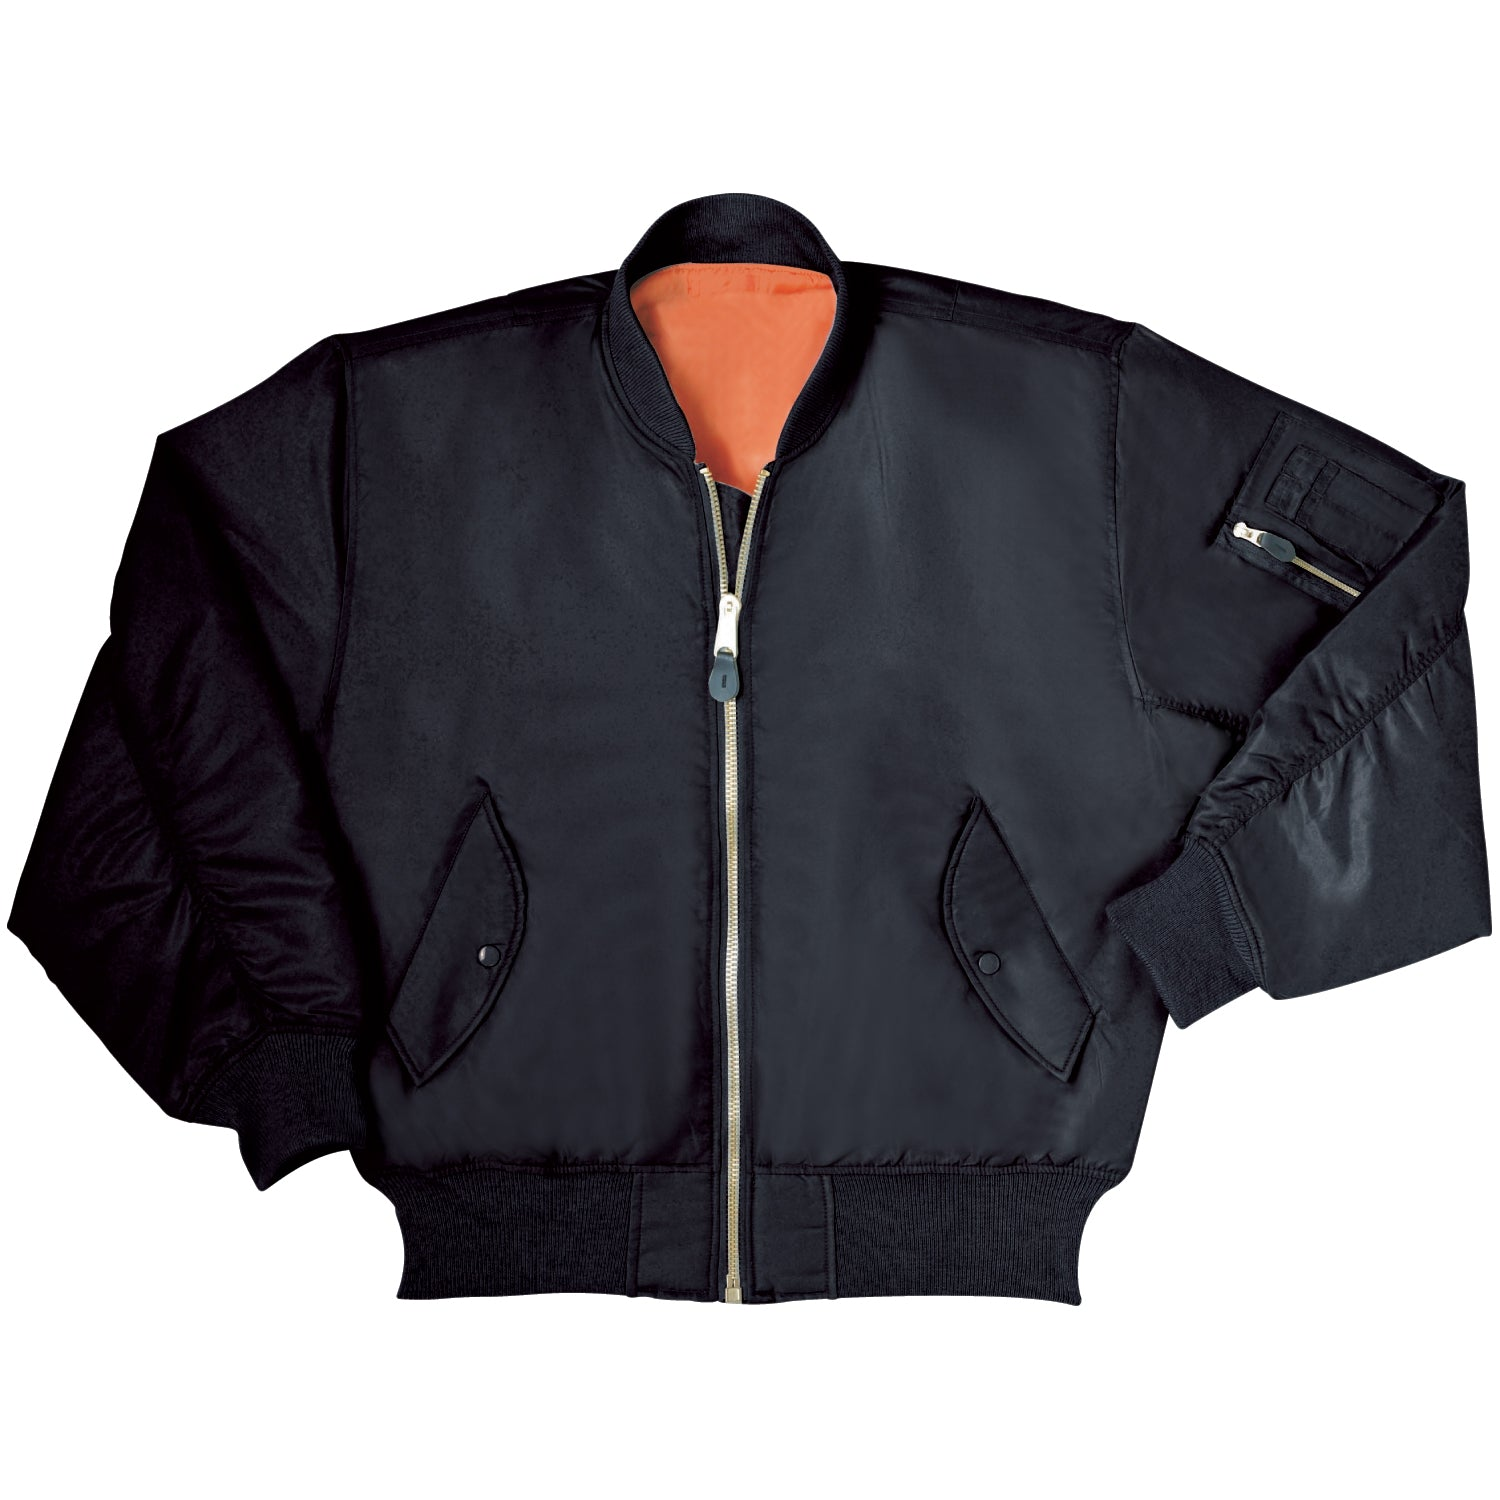 "SOWA 2100 Reversible Flight Blouson ""Special price"""